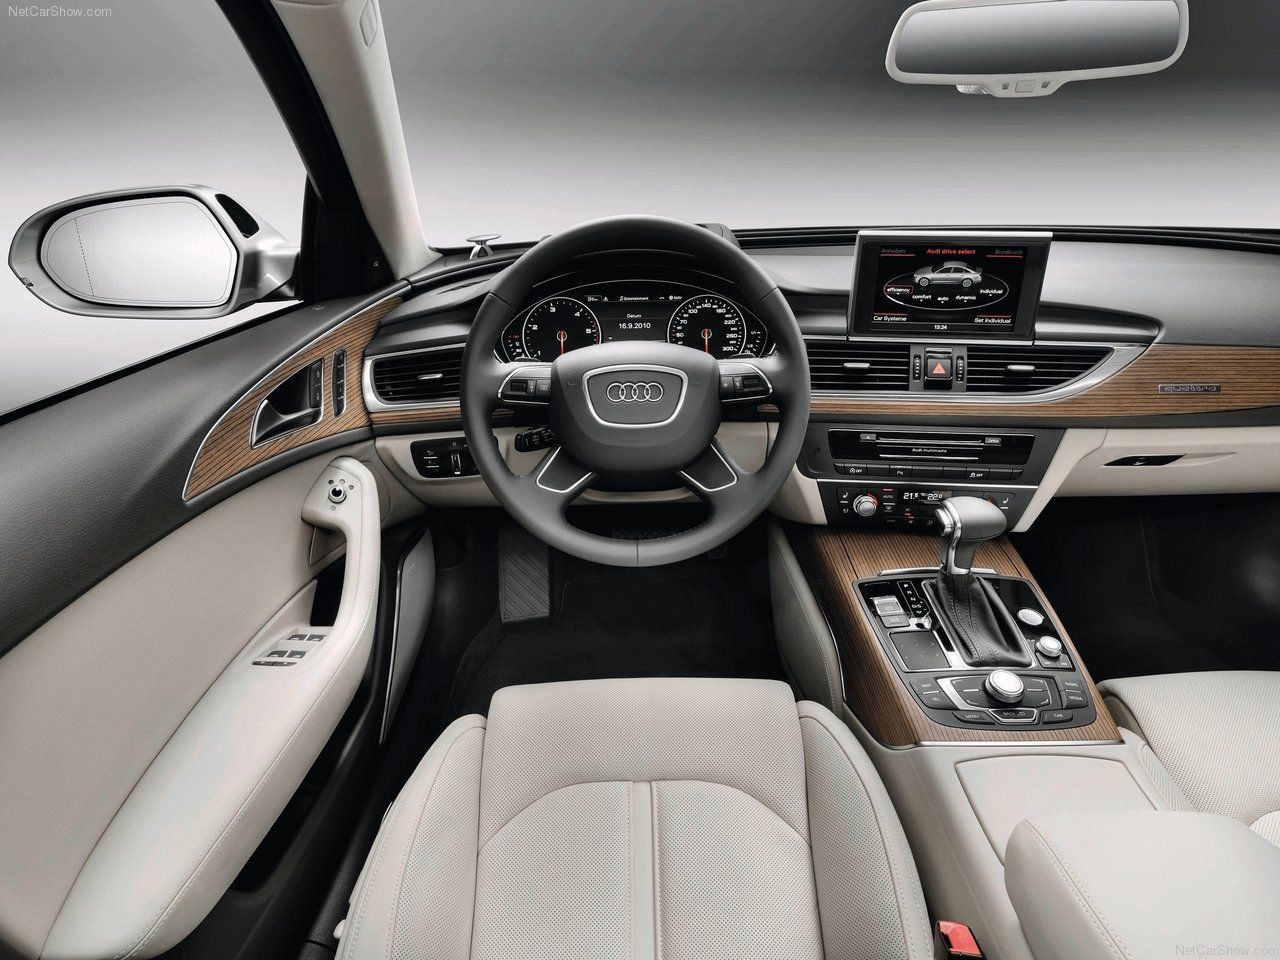 Audi A6 interior, that's what it's all about :)